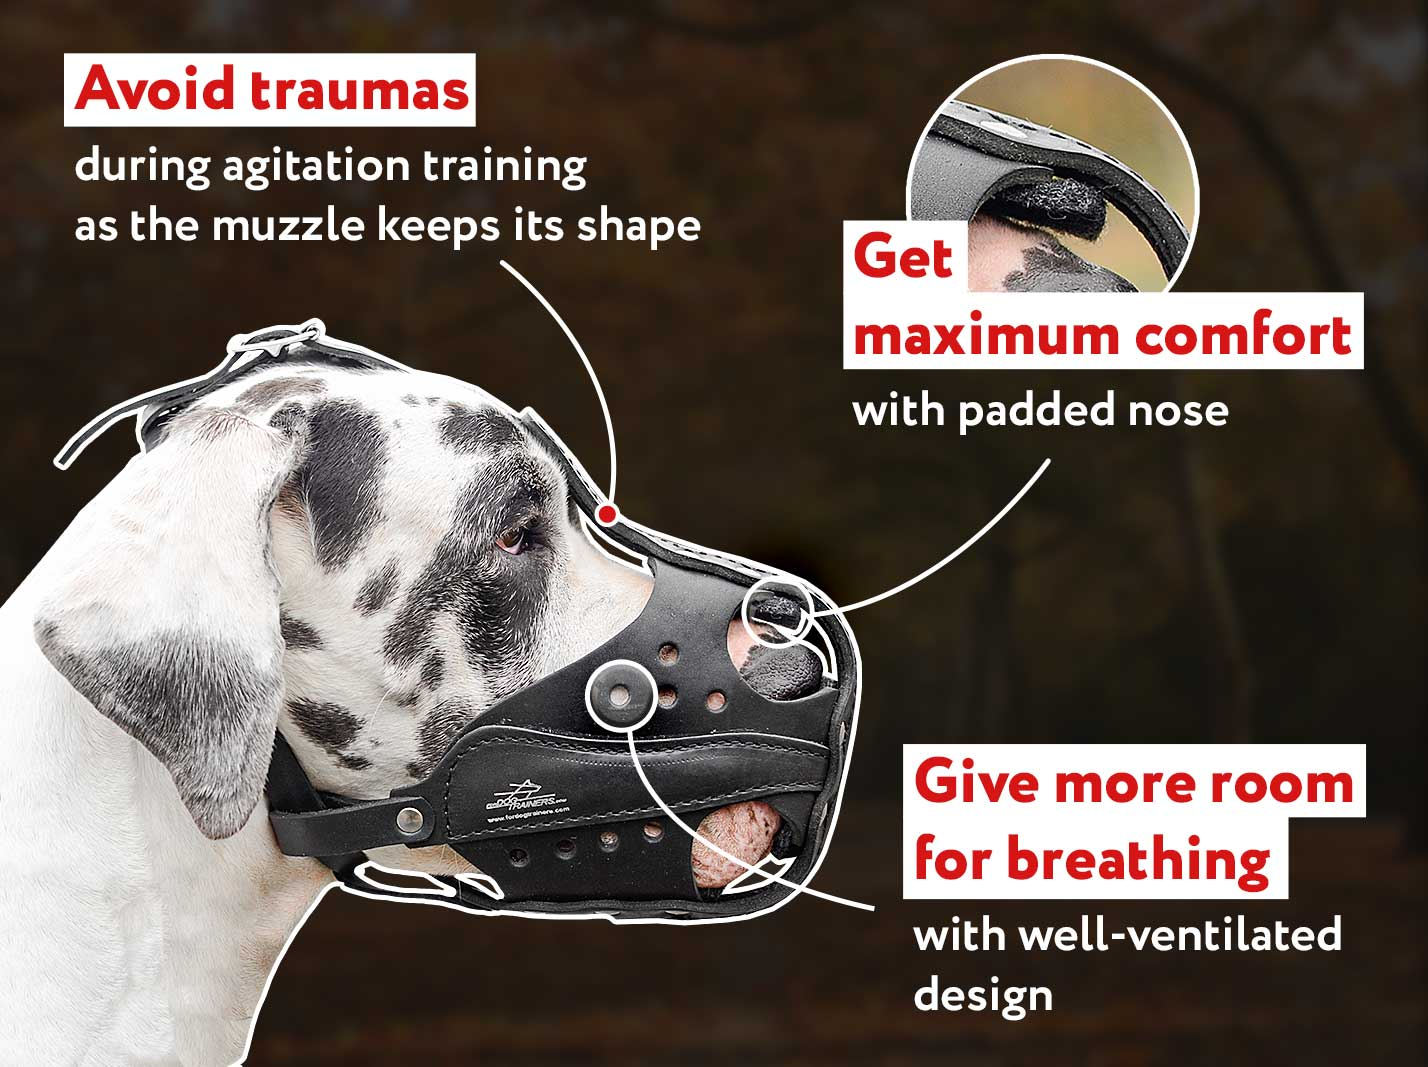 Attack/Agitation Leather Canine Muzzle for Working Dog Breeds